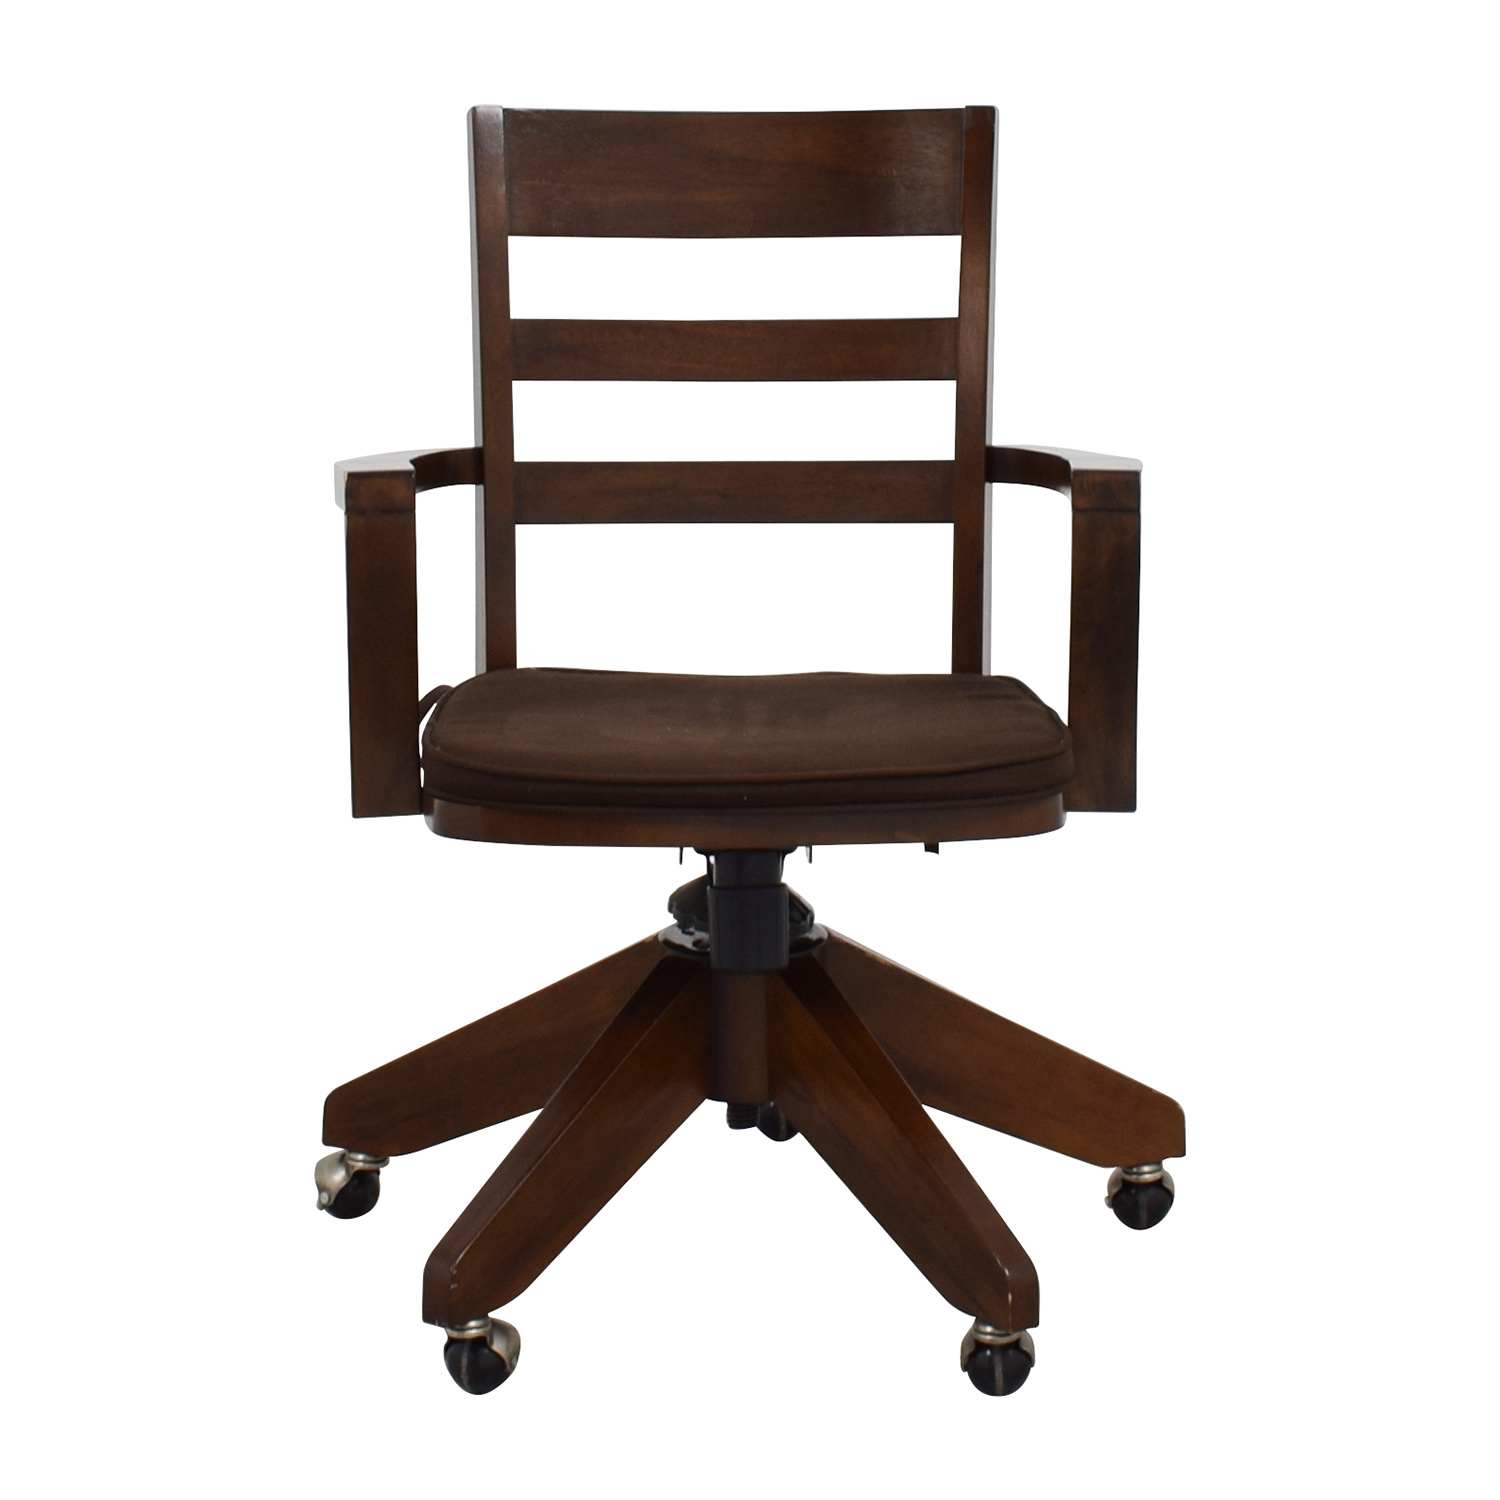 shop Pottery Barn Wooden Swivel Desk Chair Pottery Barn Home Office Chairs